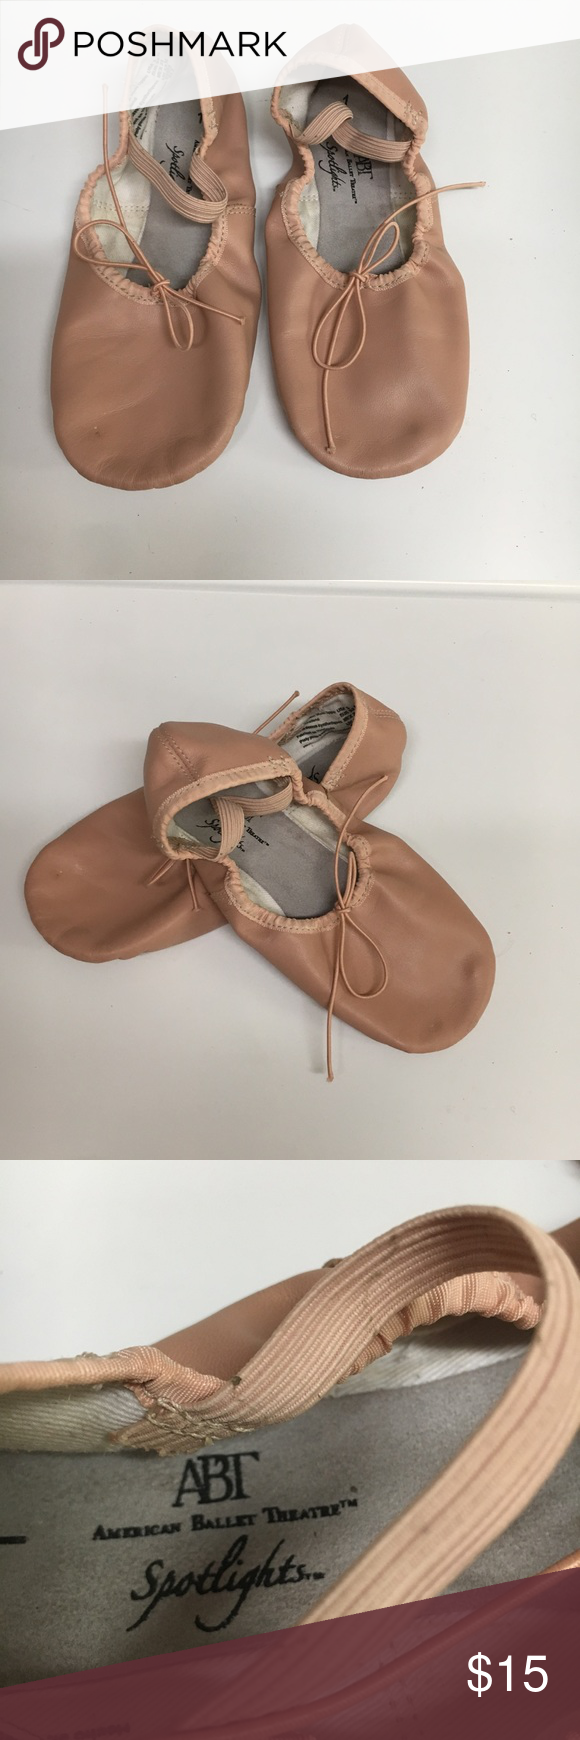 ABT Ballet Shoes Ballet Shoe Girls Ballet Shoes And Bb - Abt ballet shoes